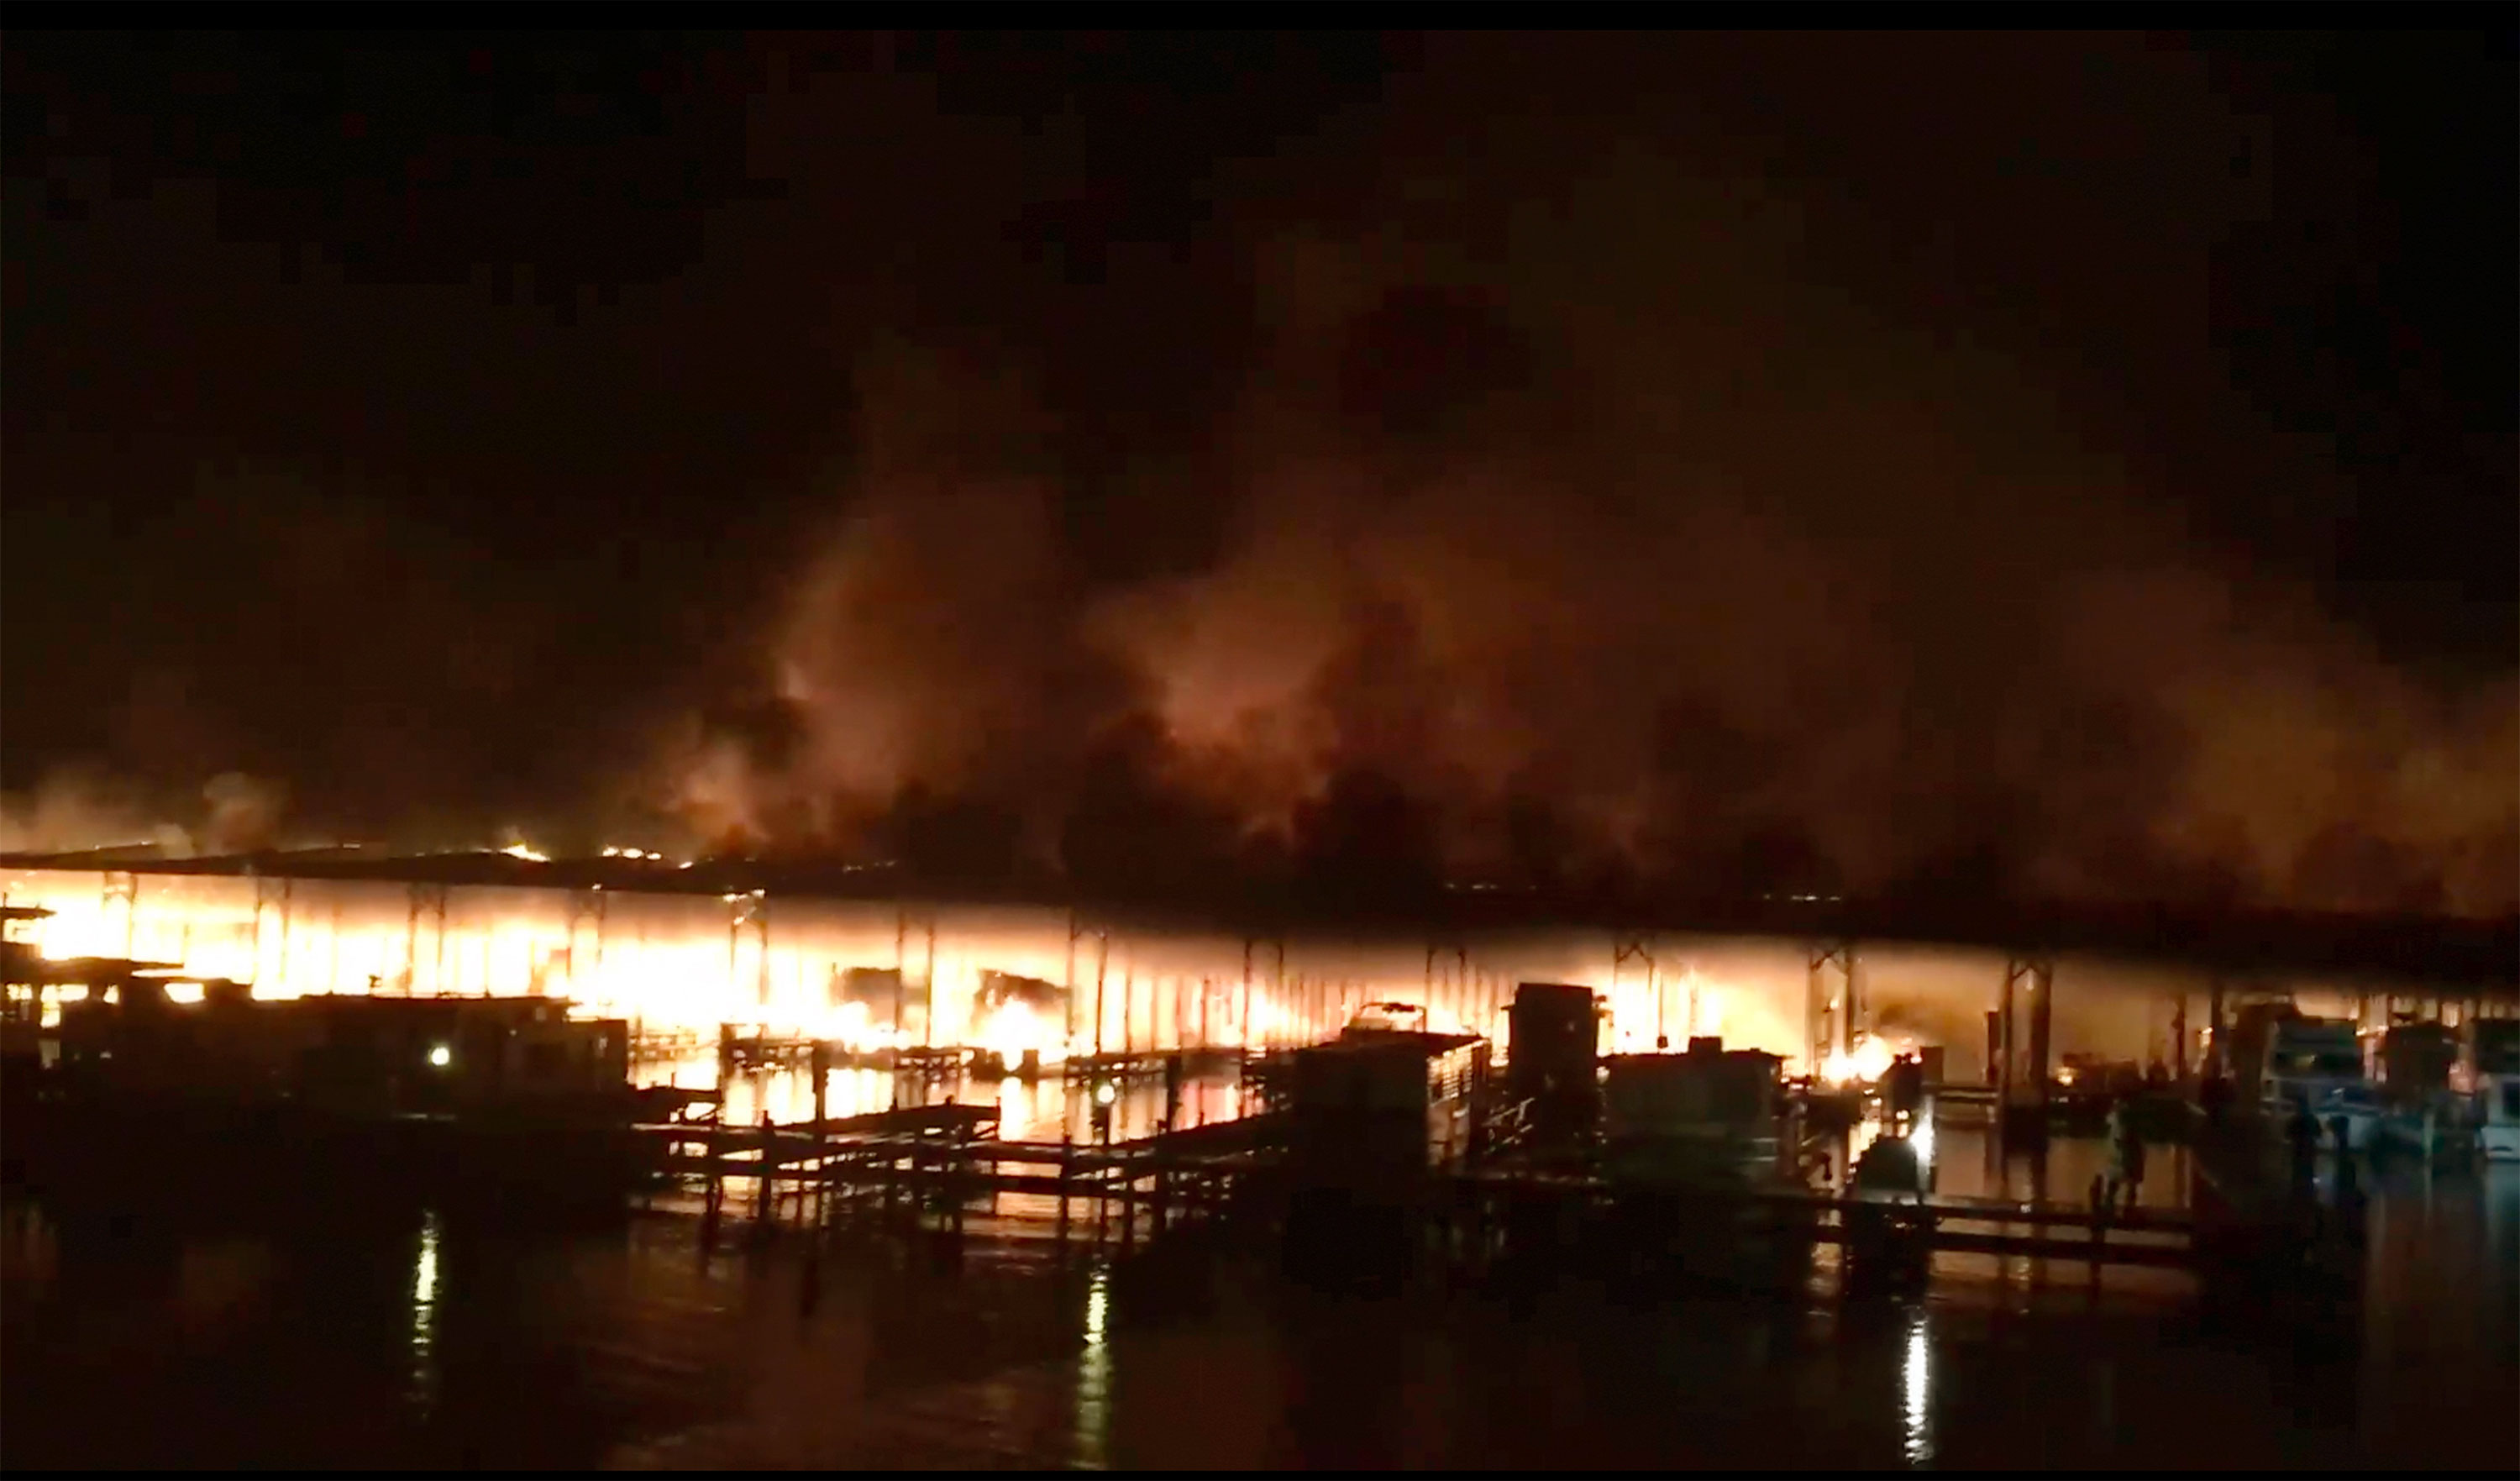 At least 8 dead and more missing as boats catch fire at an Alabama dock